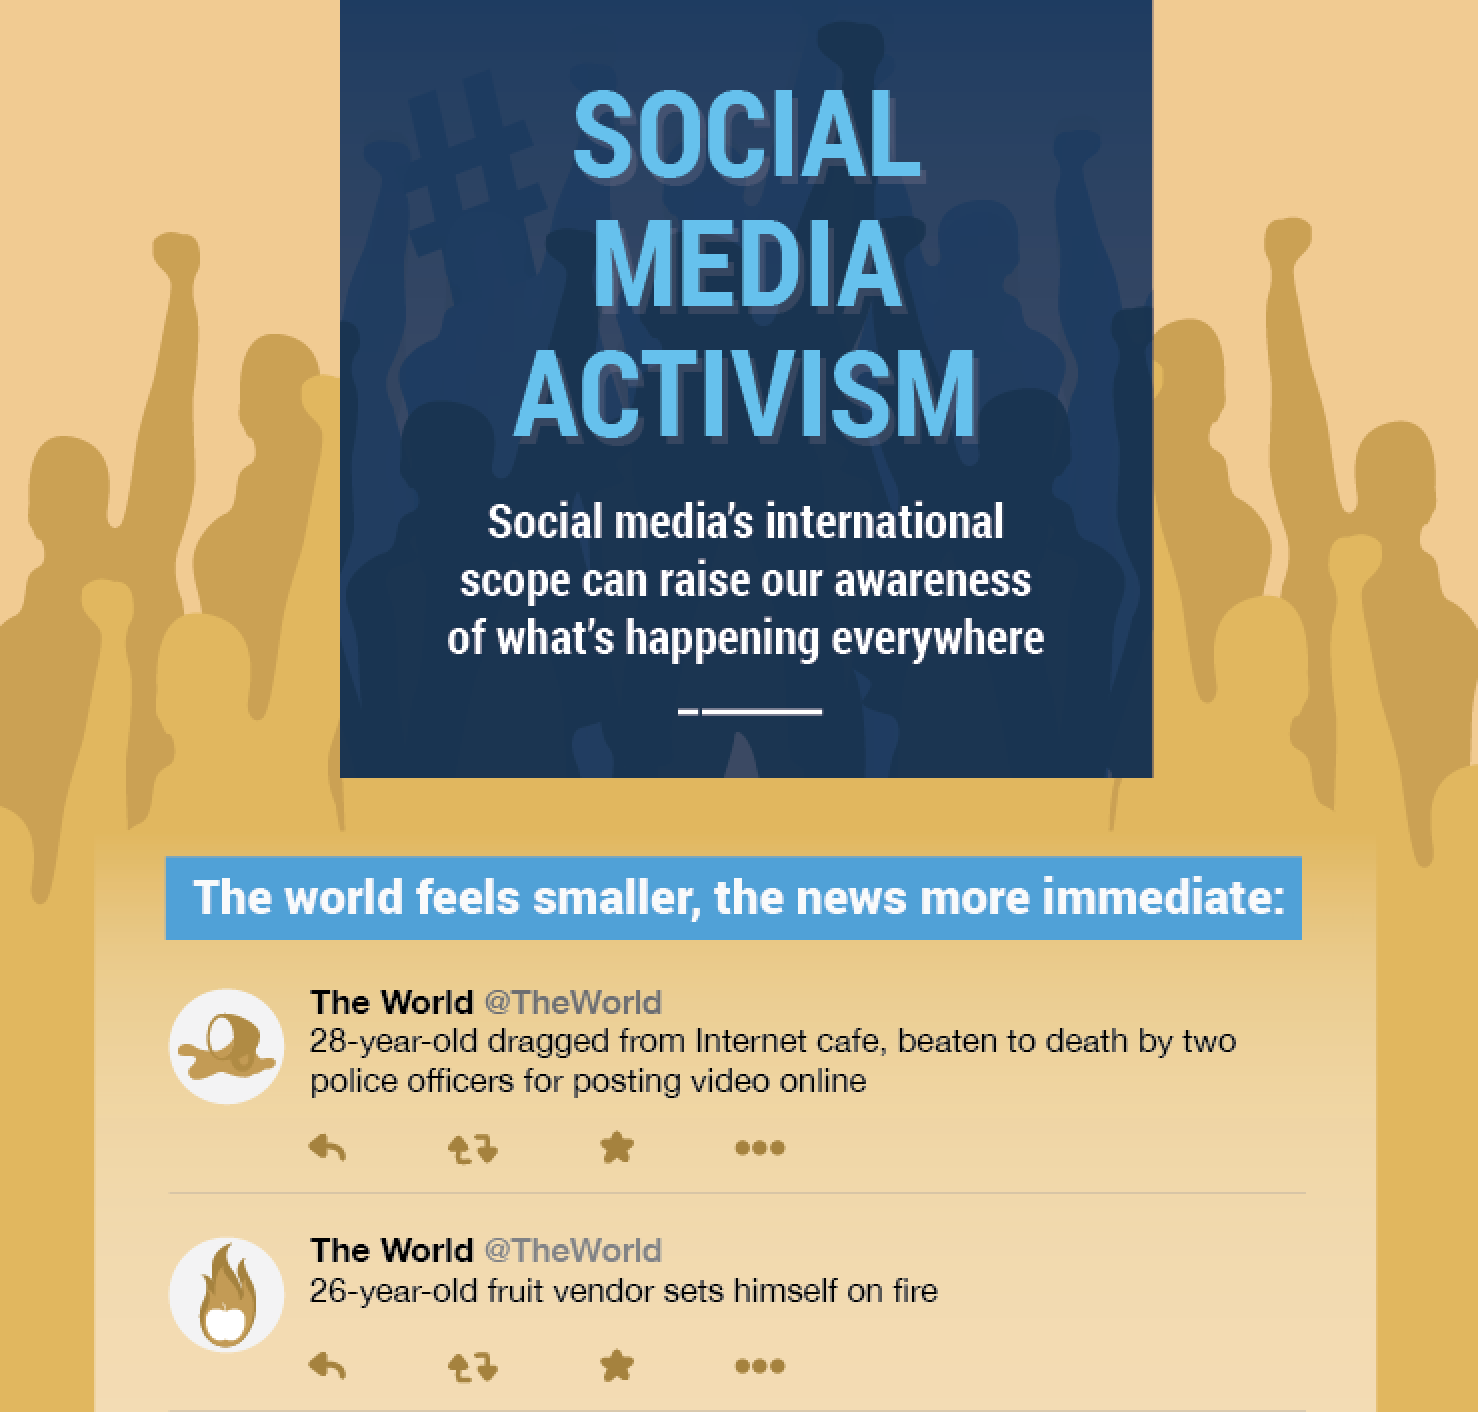 Social Media Activism:Power of the Hashtag - In honor of Black History Month, SkilledUp published a series of infographics highlighting the formation, unsung heroes and future of the civil rights movement.Researched and written by Anna CherryClick here to view full infographic